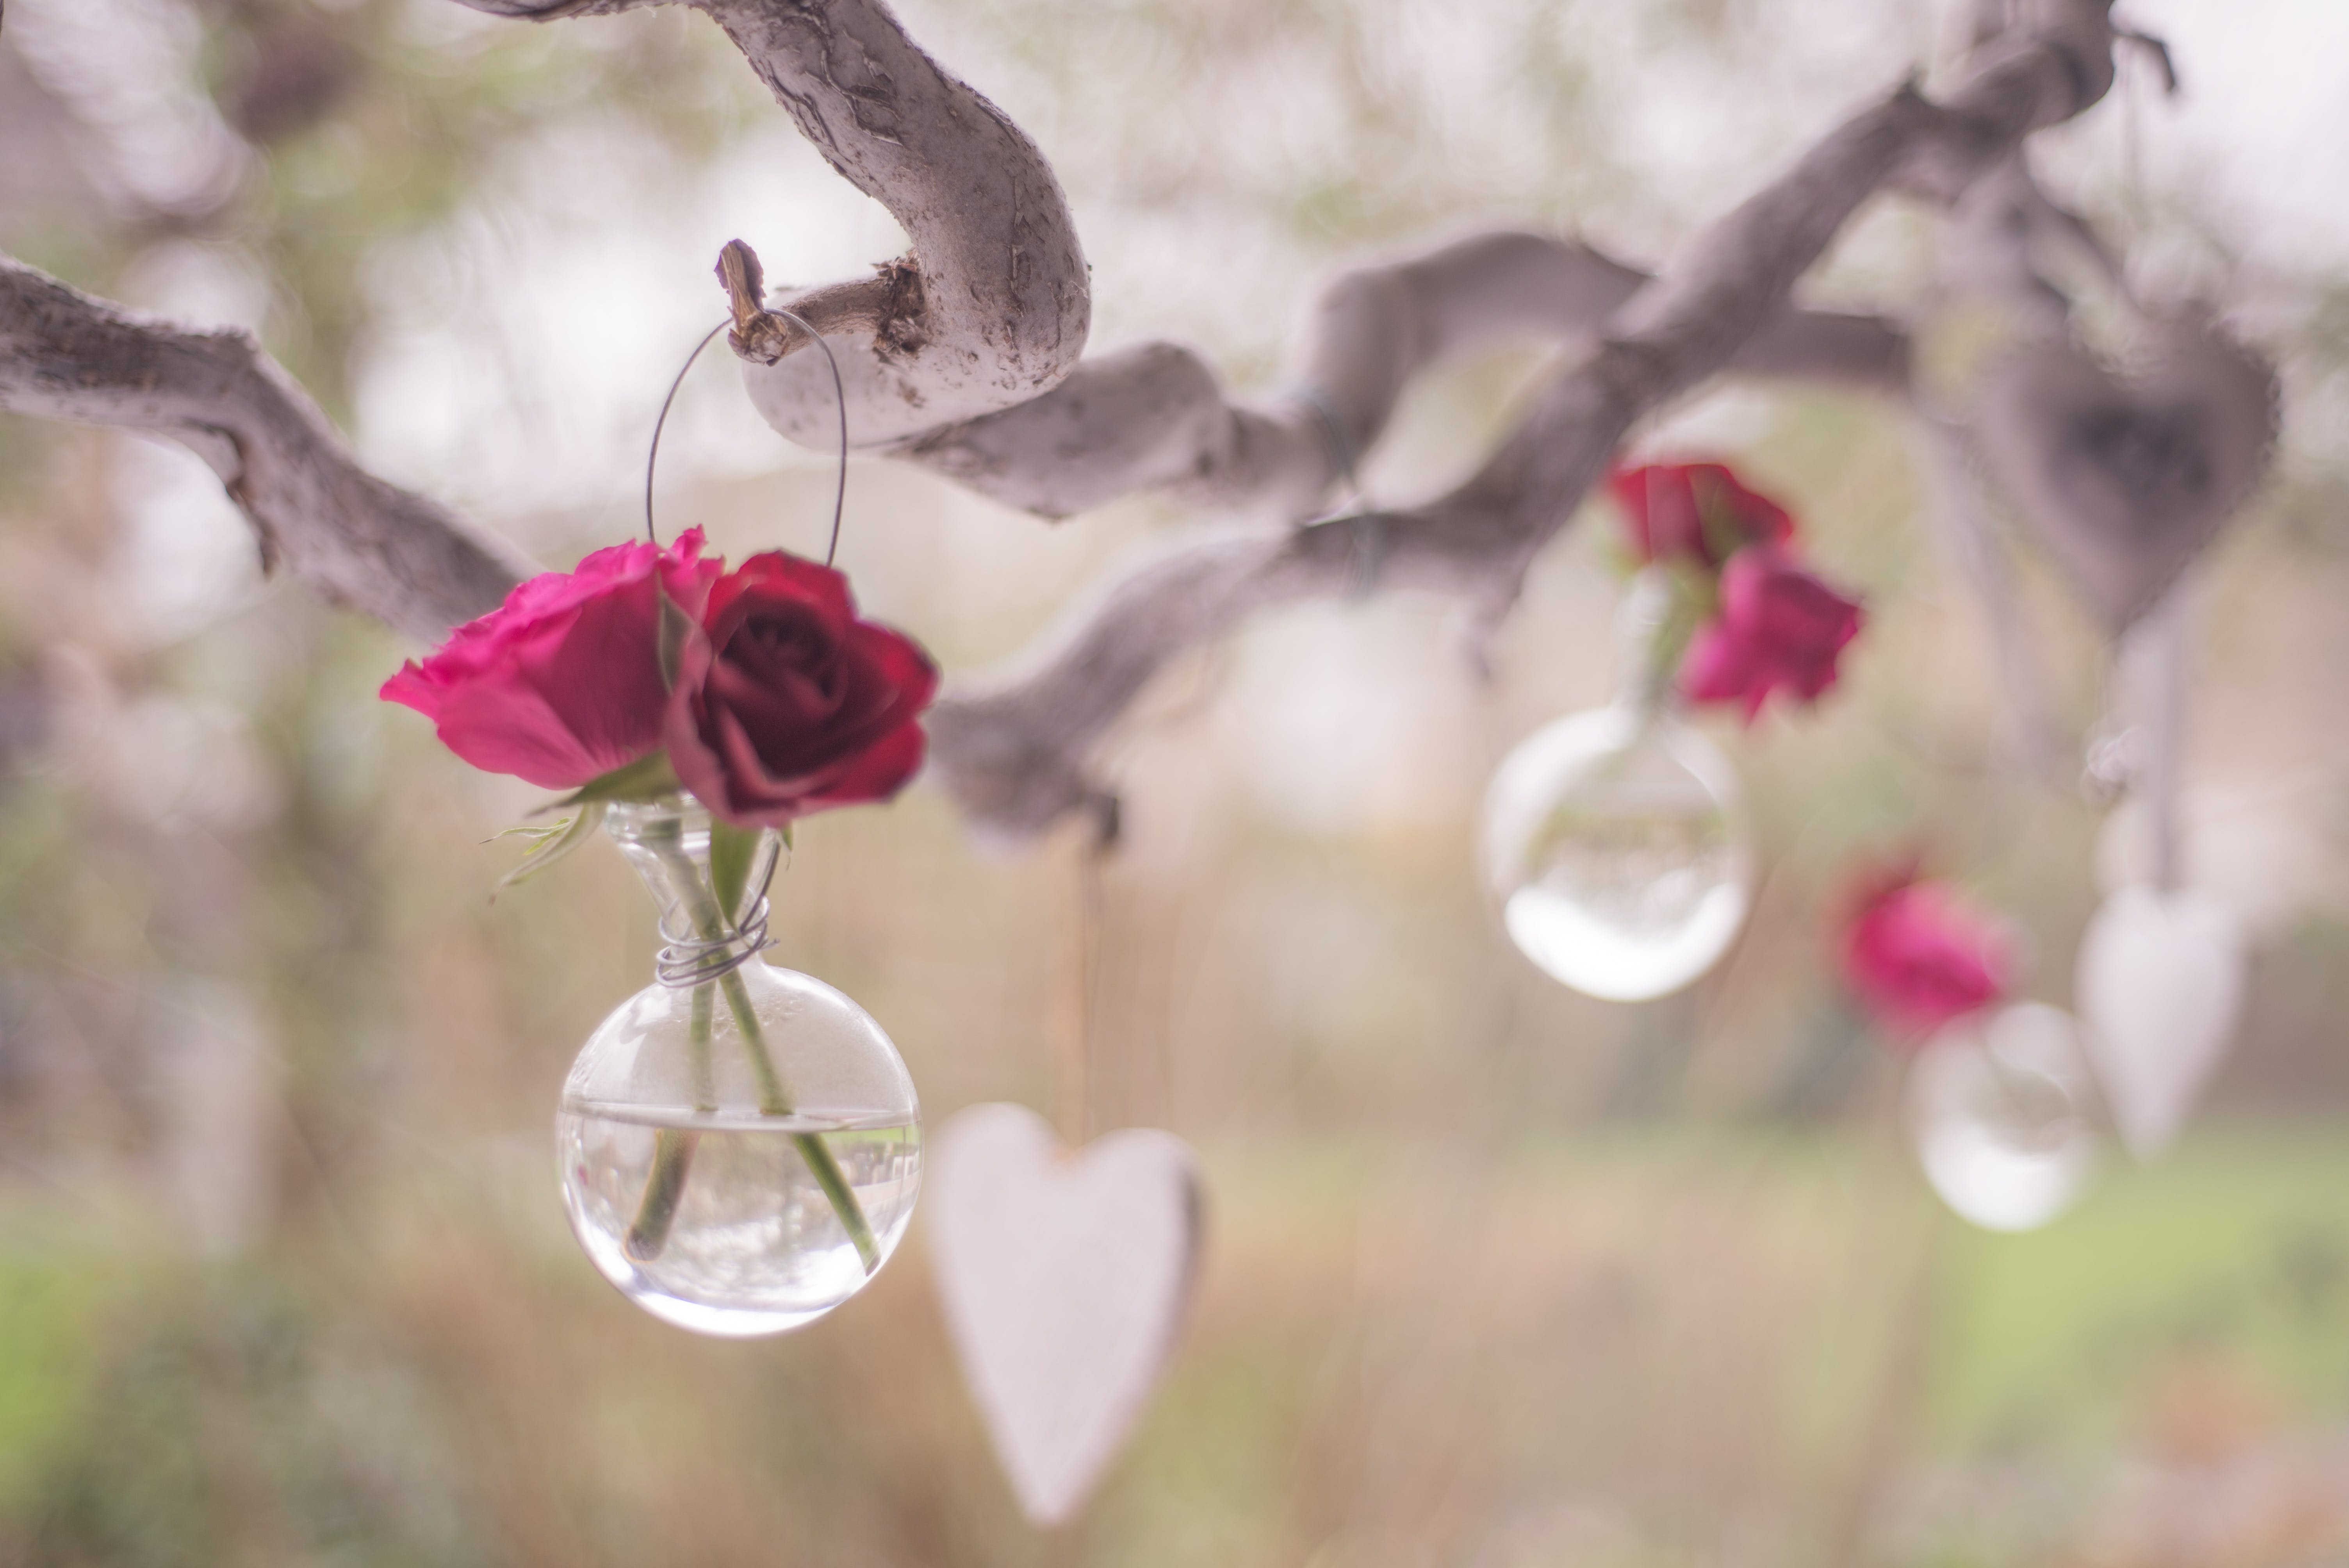 Shallow Focus Photography of Clear Glass Hanging Decor With Two Red Roses